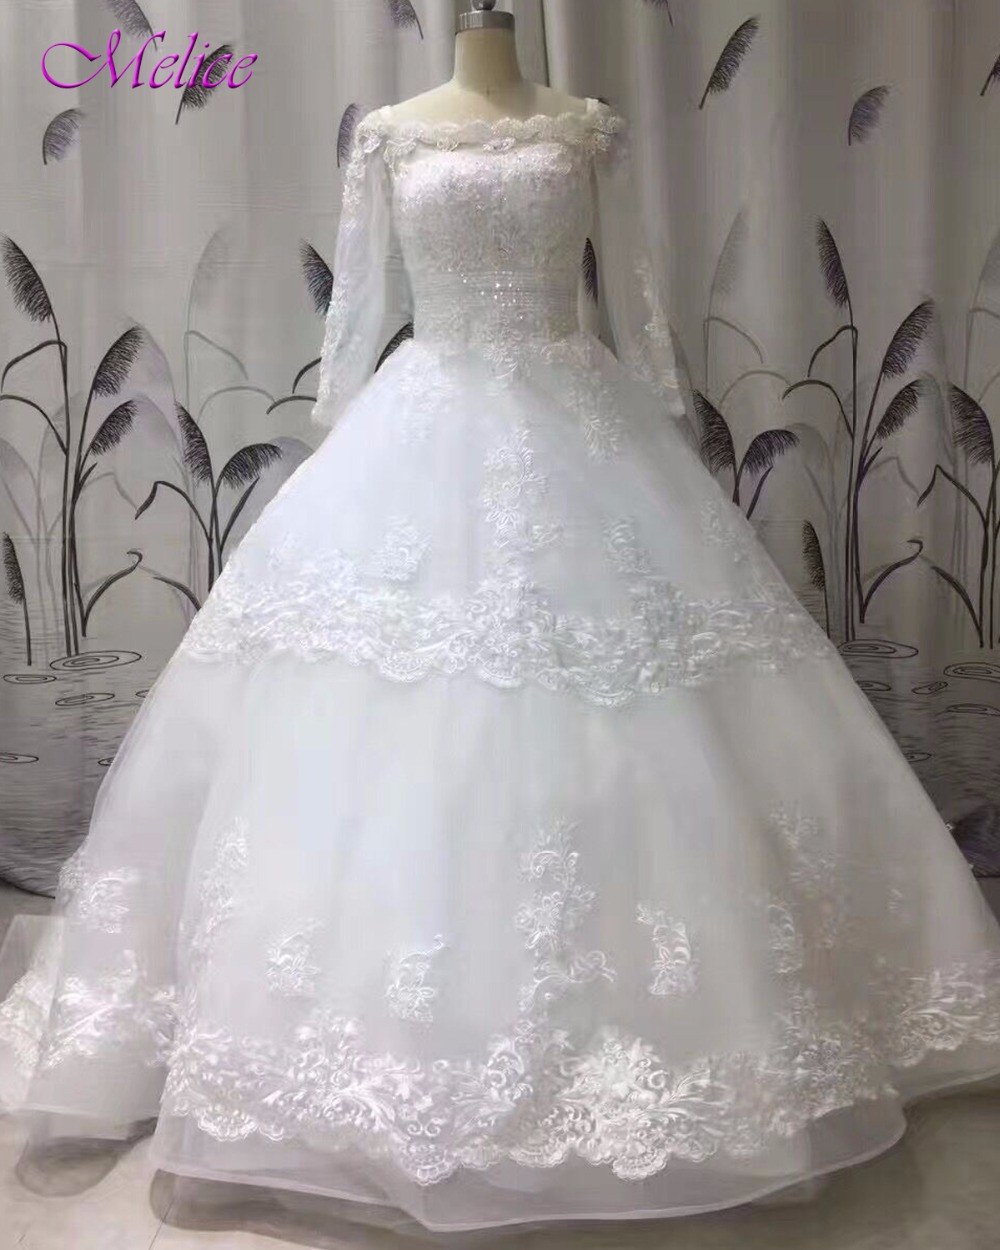 Melice Real Photo Appliques Chapel Train Ball Gown Wedding Dress 2018 Boat Neck Robe De Mariage Long Sleeve Beaded Wedding Gown